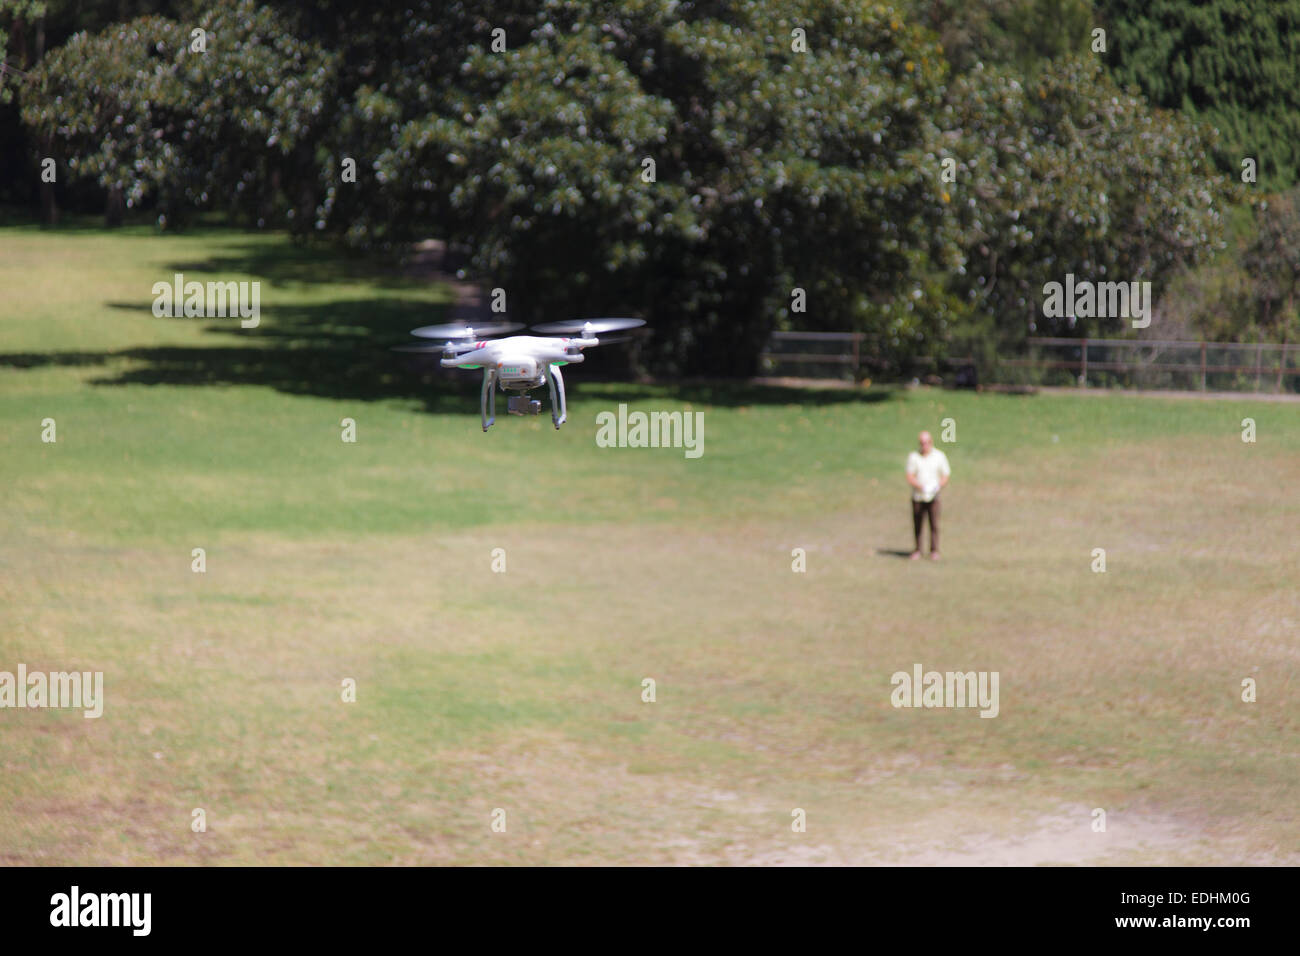 Drone Operator flying his drone - Stock Image